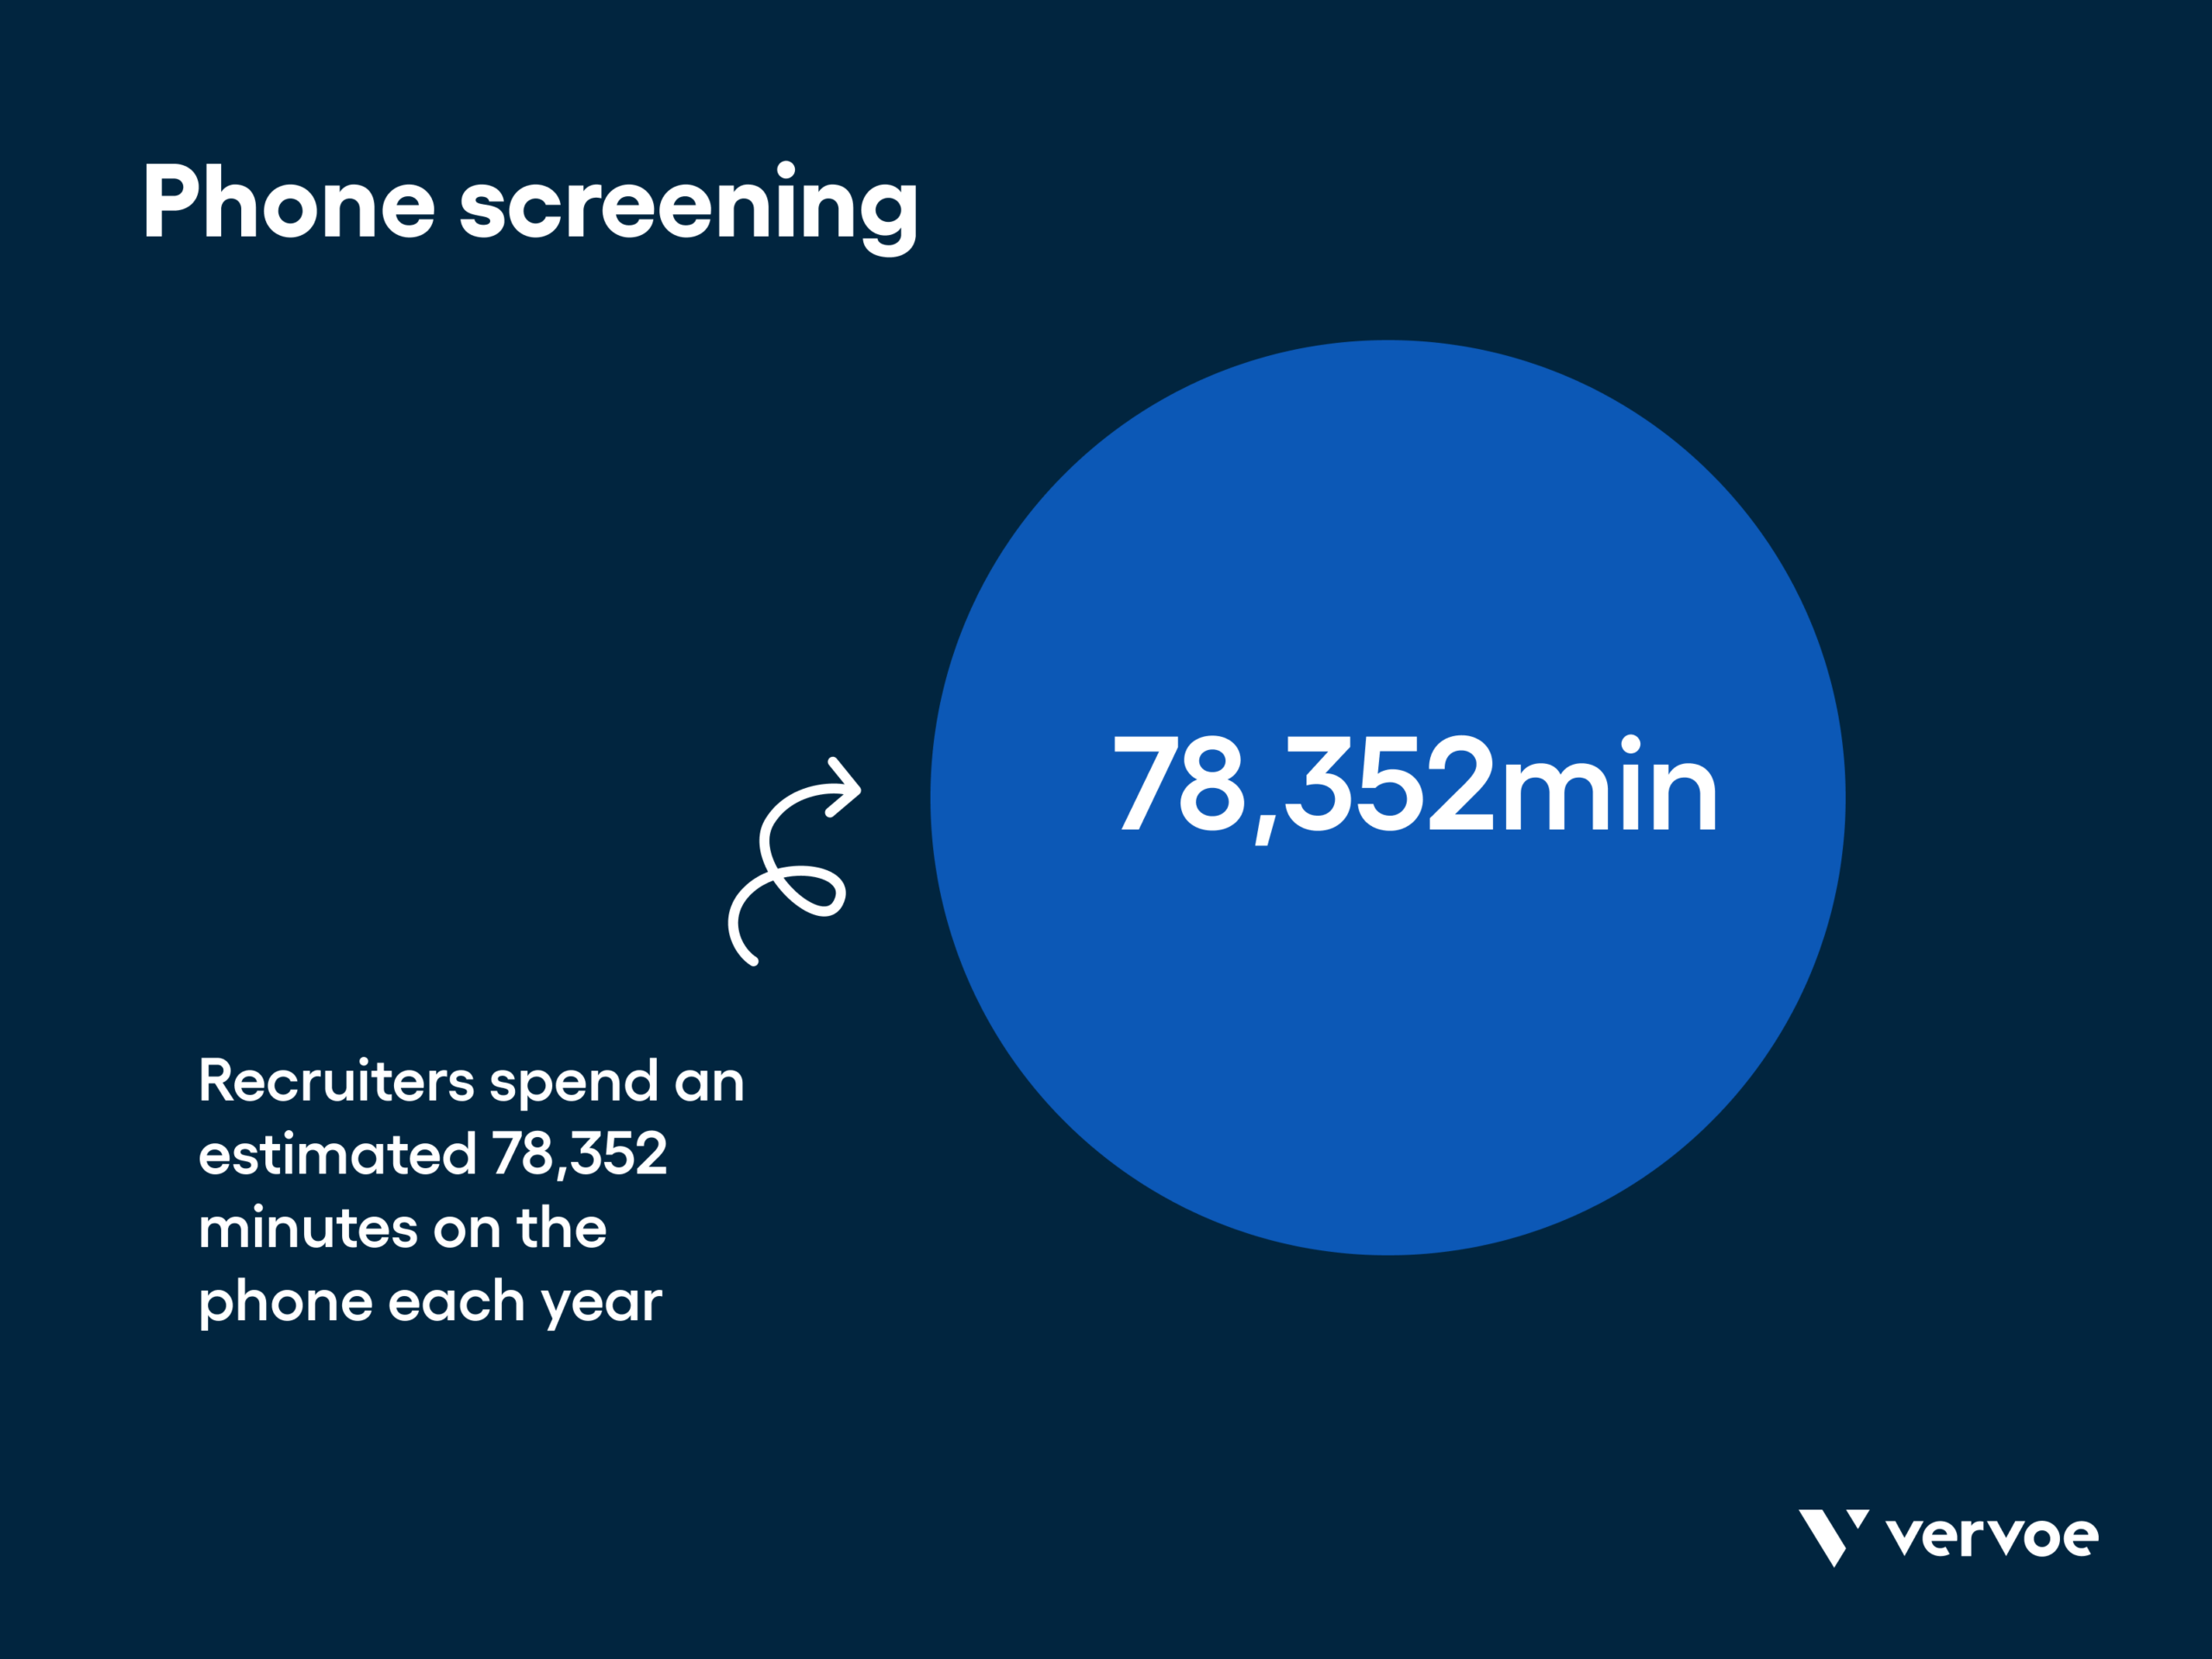 Time recruiters spend phone screening each year